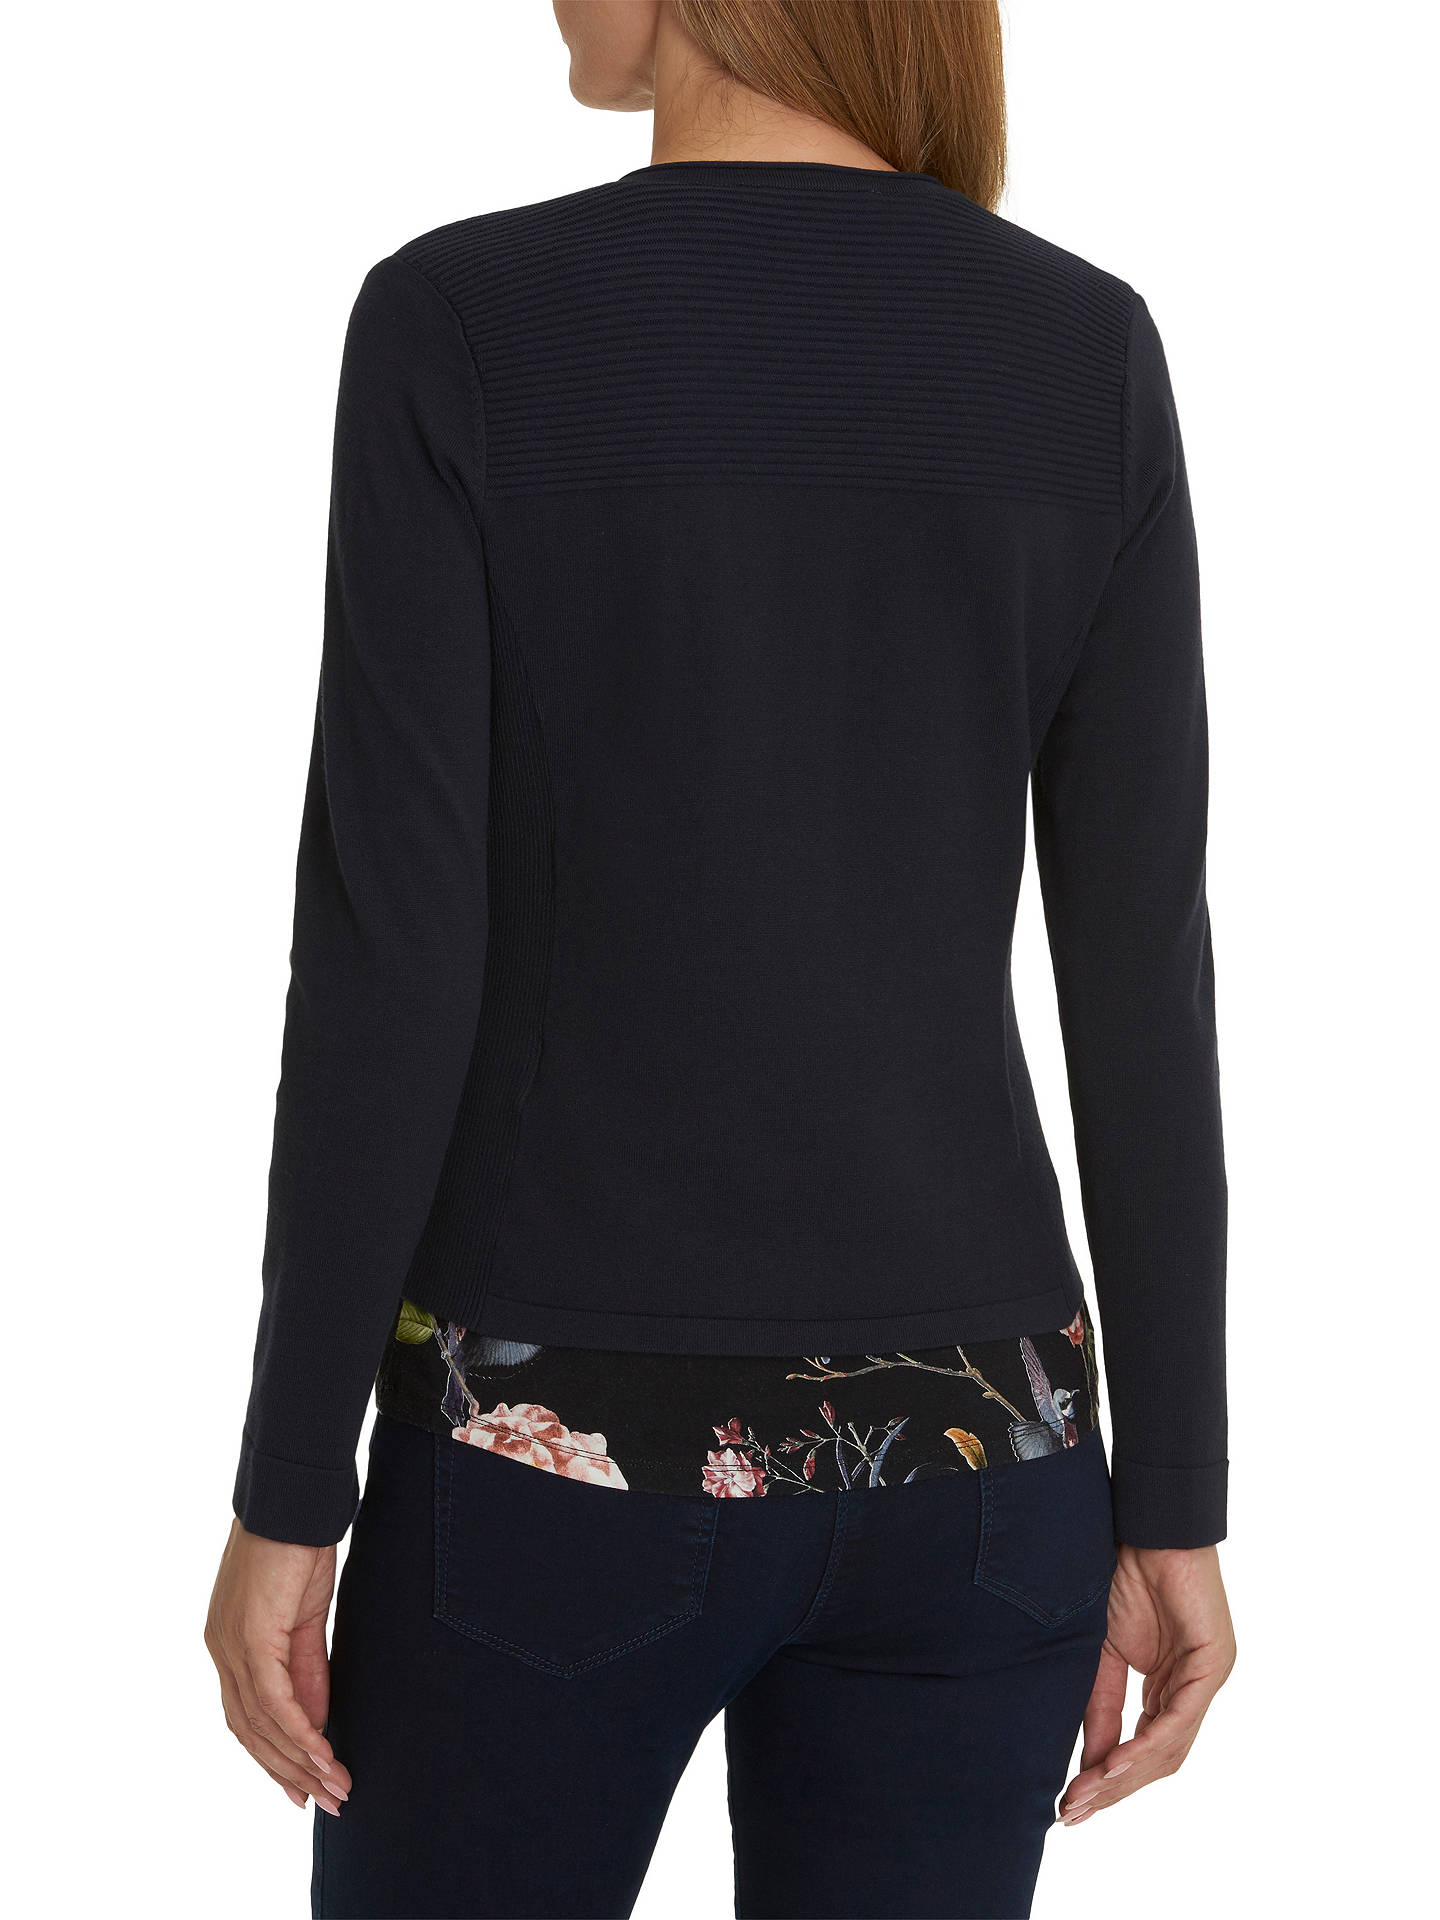 BuyBetty Barclay Quilted Cardigan, Dark Sky, 20 Online at johnlewis.com